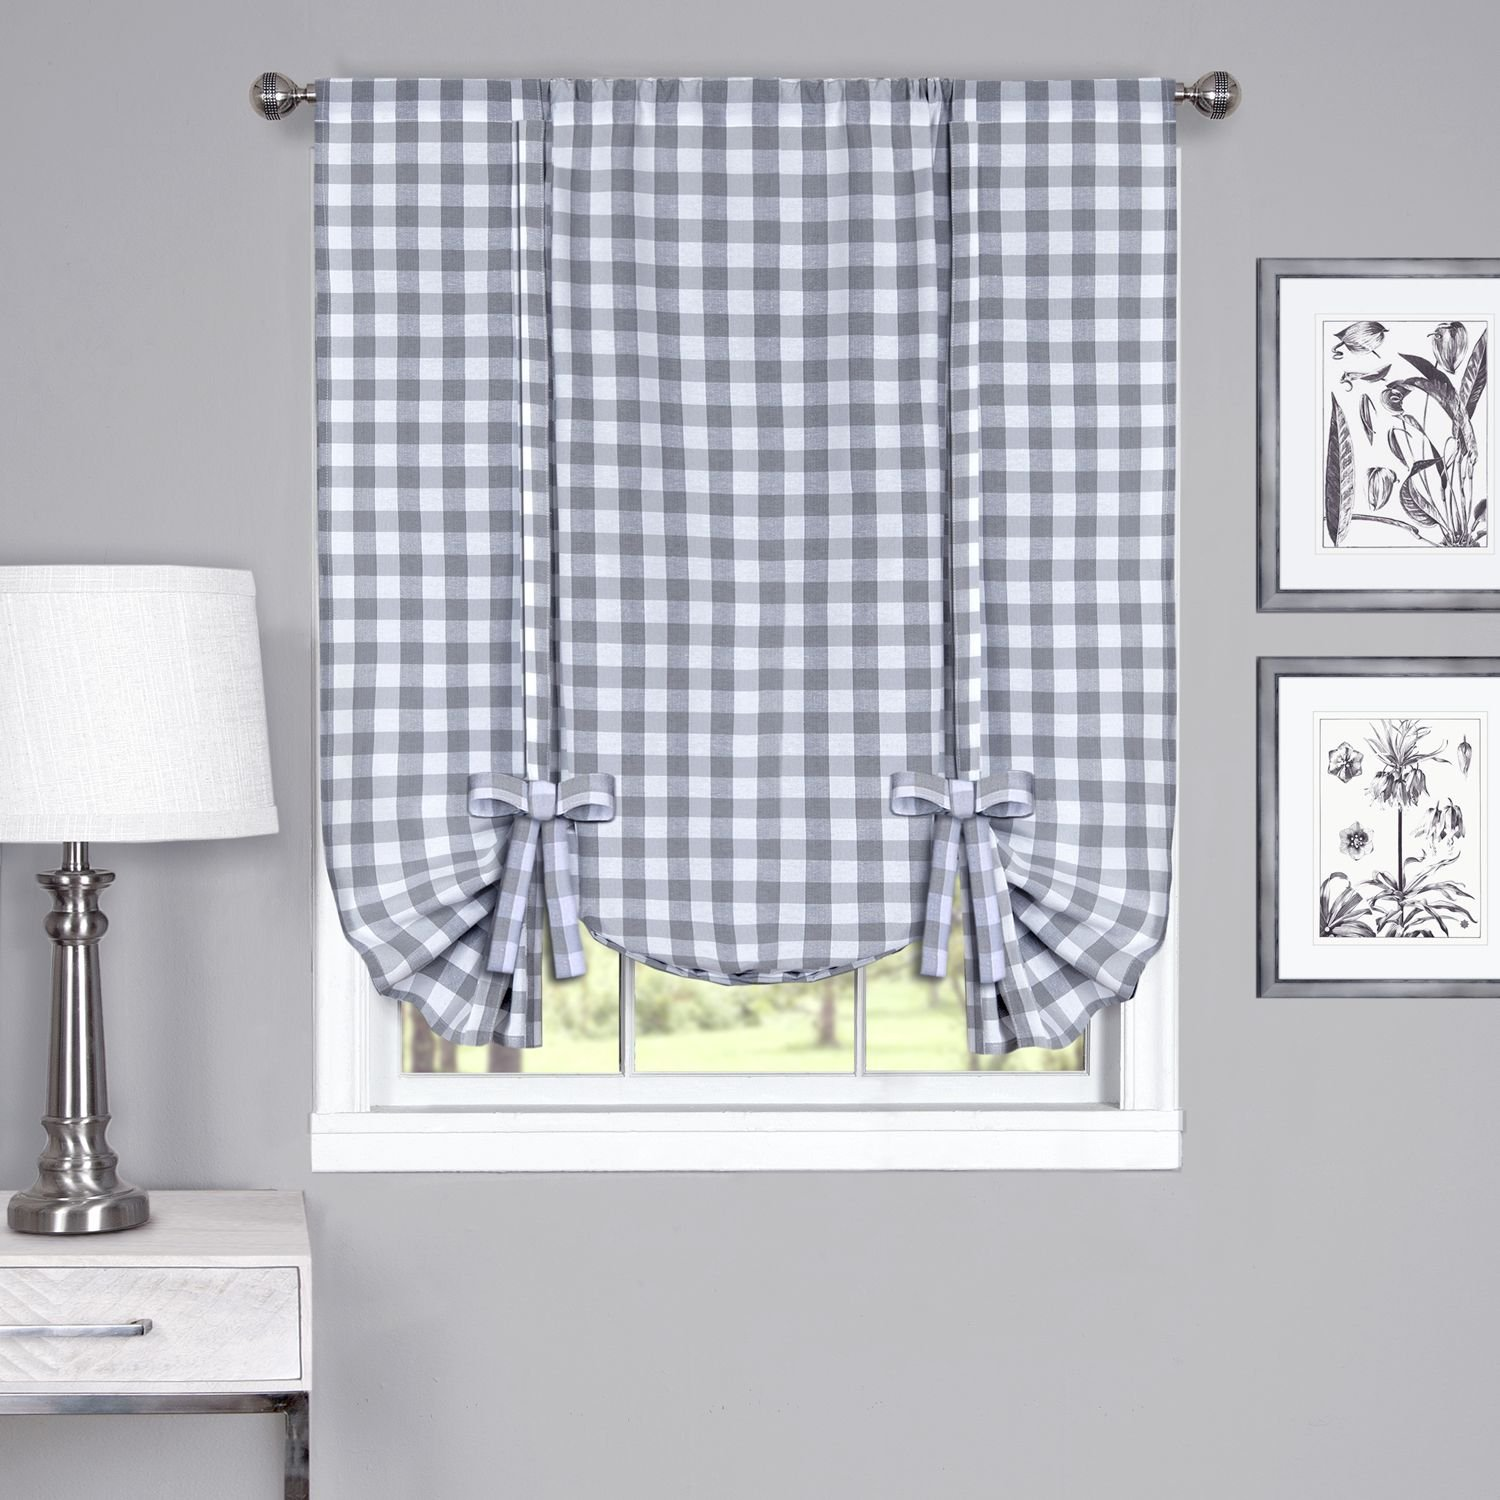 "Achim Home Furnishings Buffalo Check Window Curtain Tie Up Shade, 42"" x 63"", Grey & White"